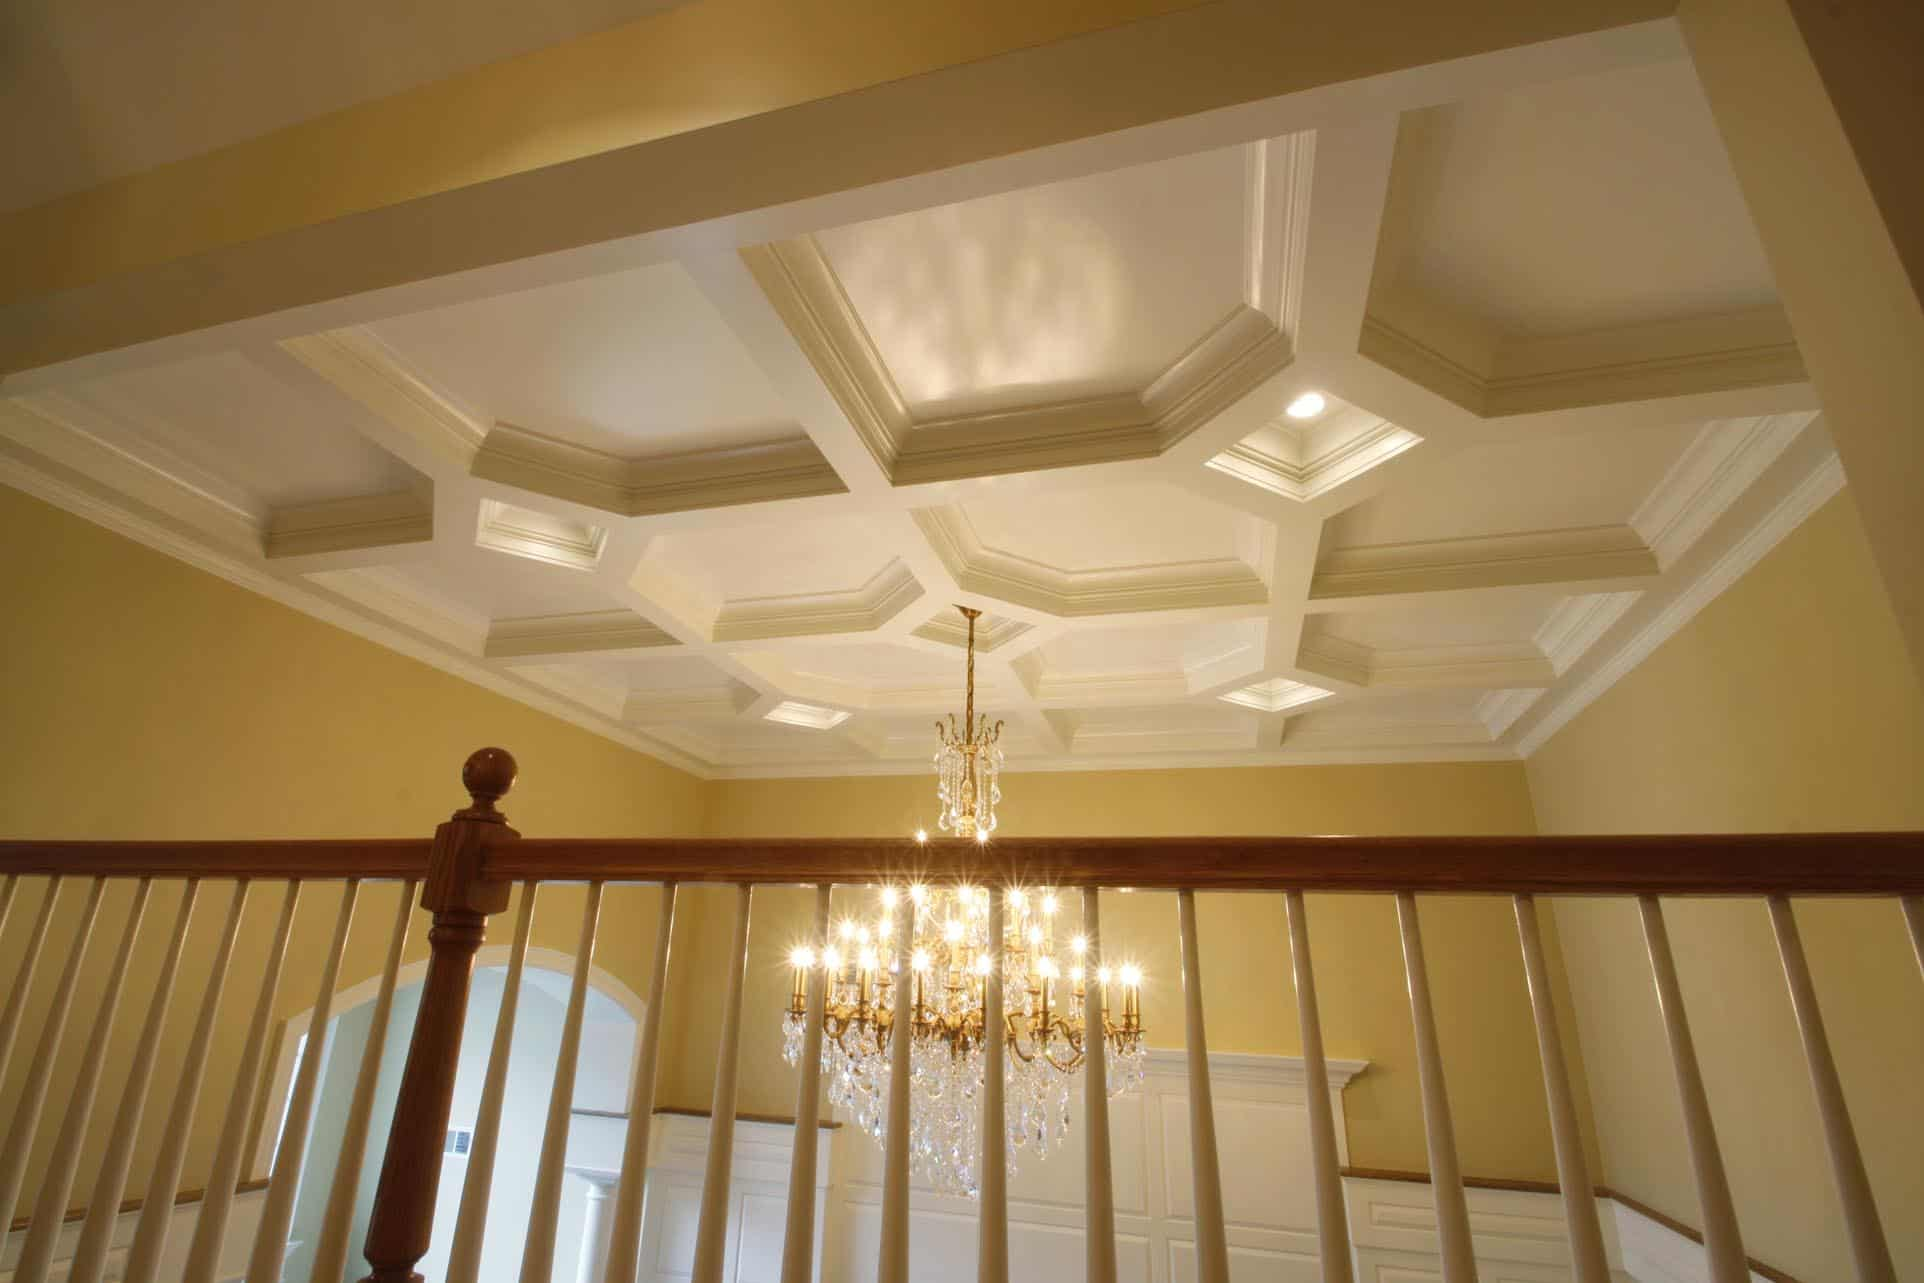 coffered ceiling, coffered ceilings, ceiling treatment, ceiling design, ceiling panel, faux wood ceiling beams